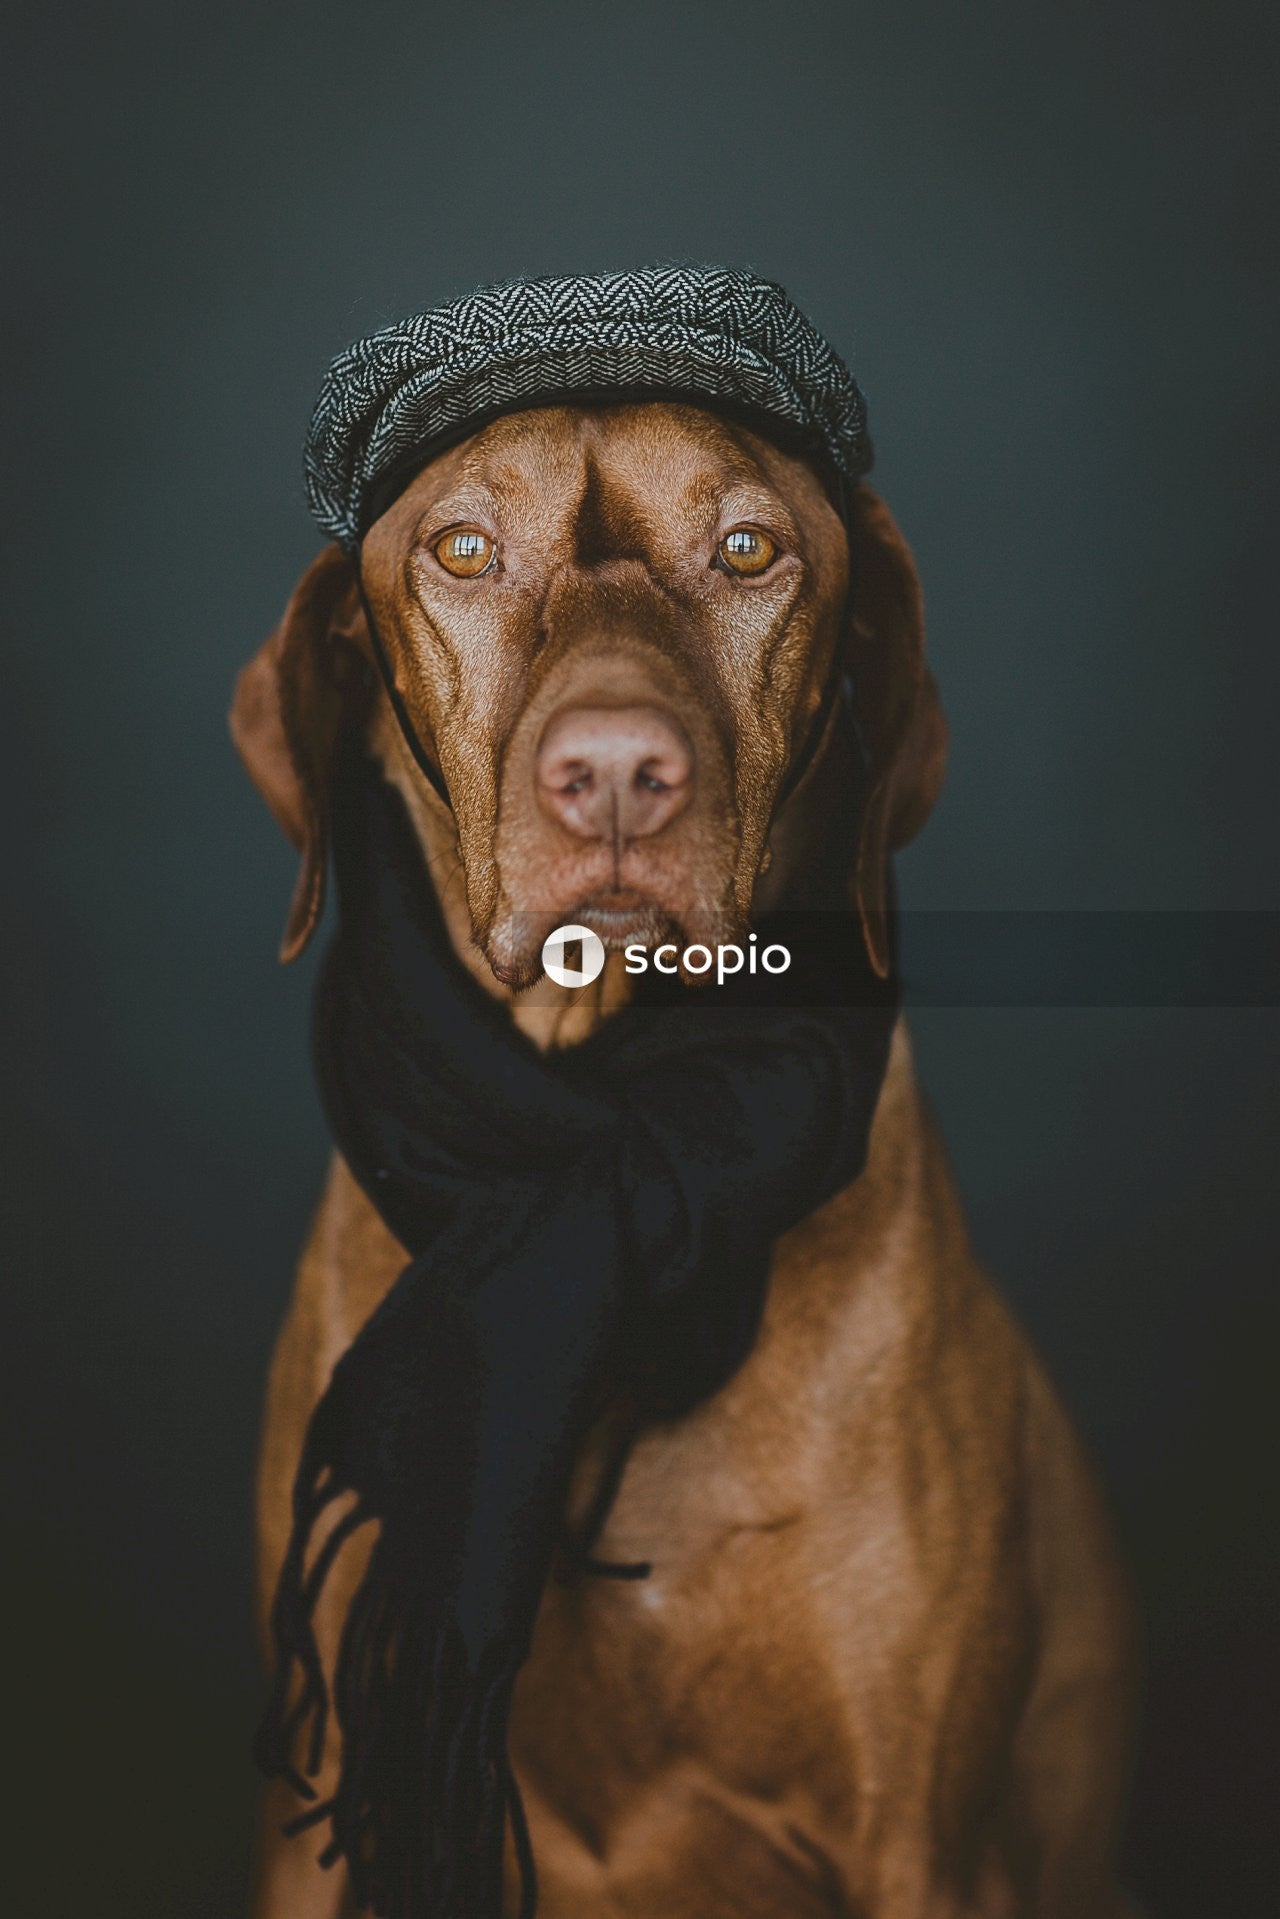 Brown short coated dog wearing black and white knit cap